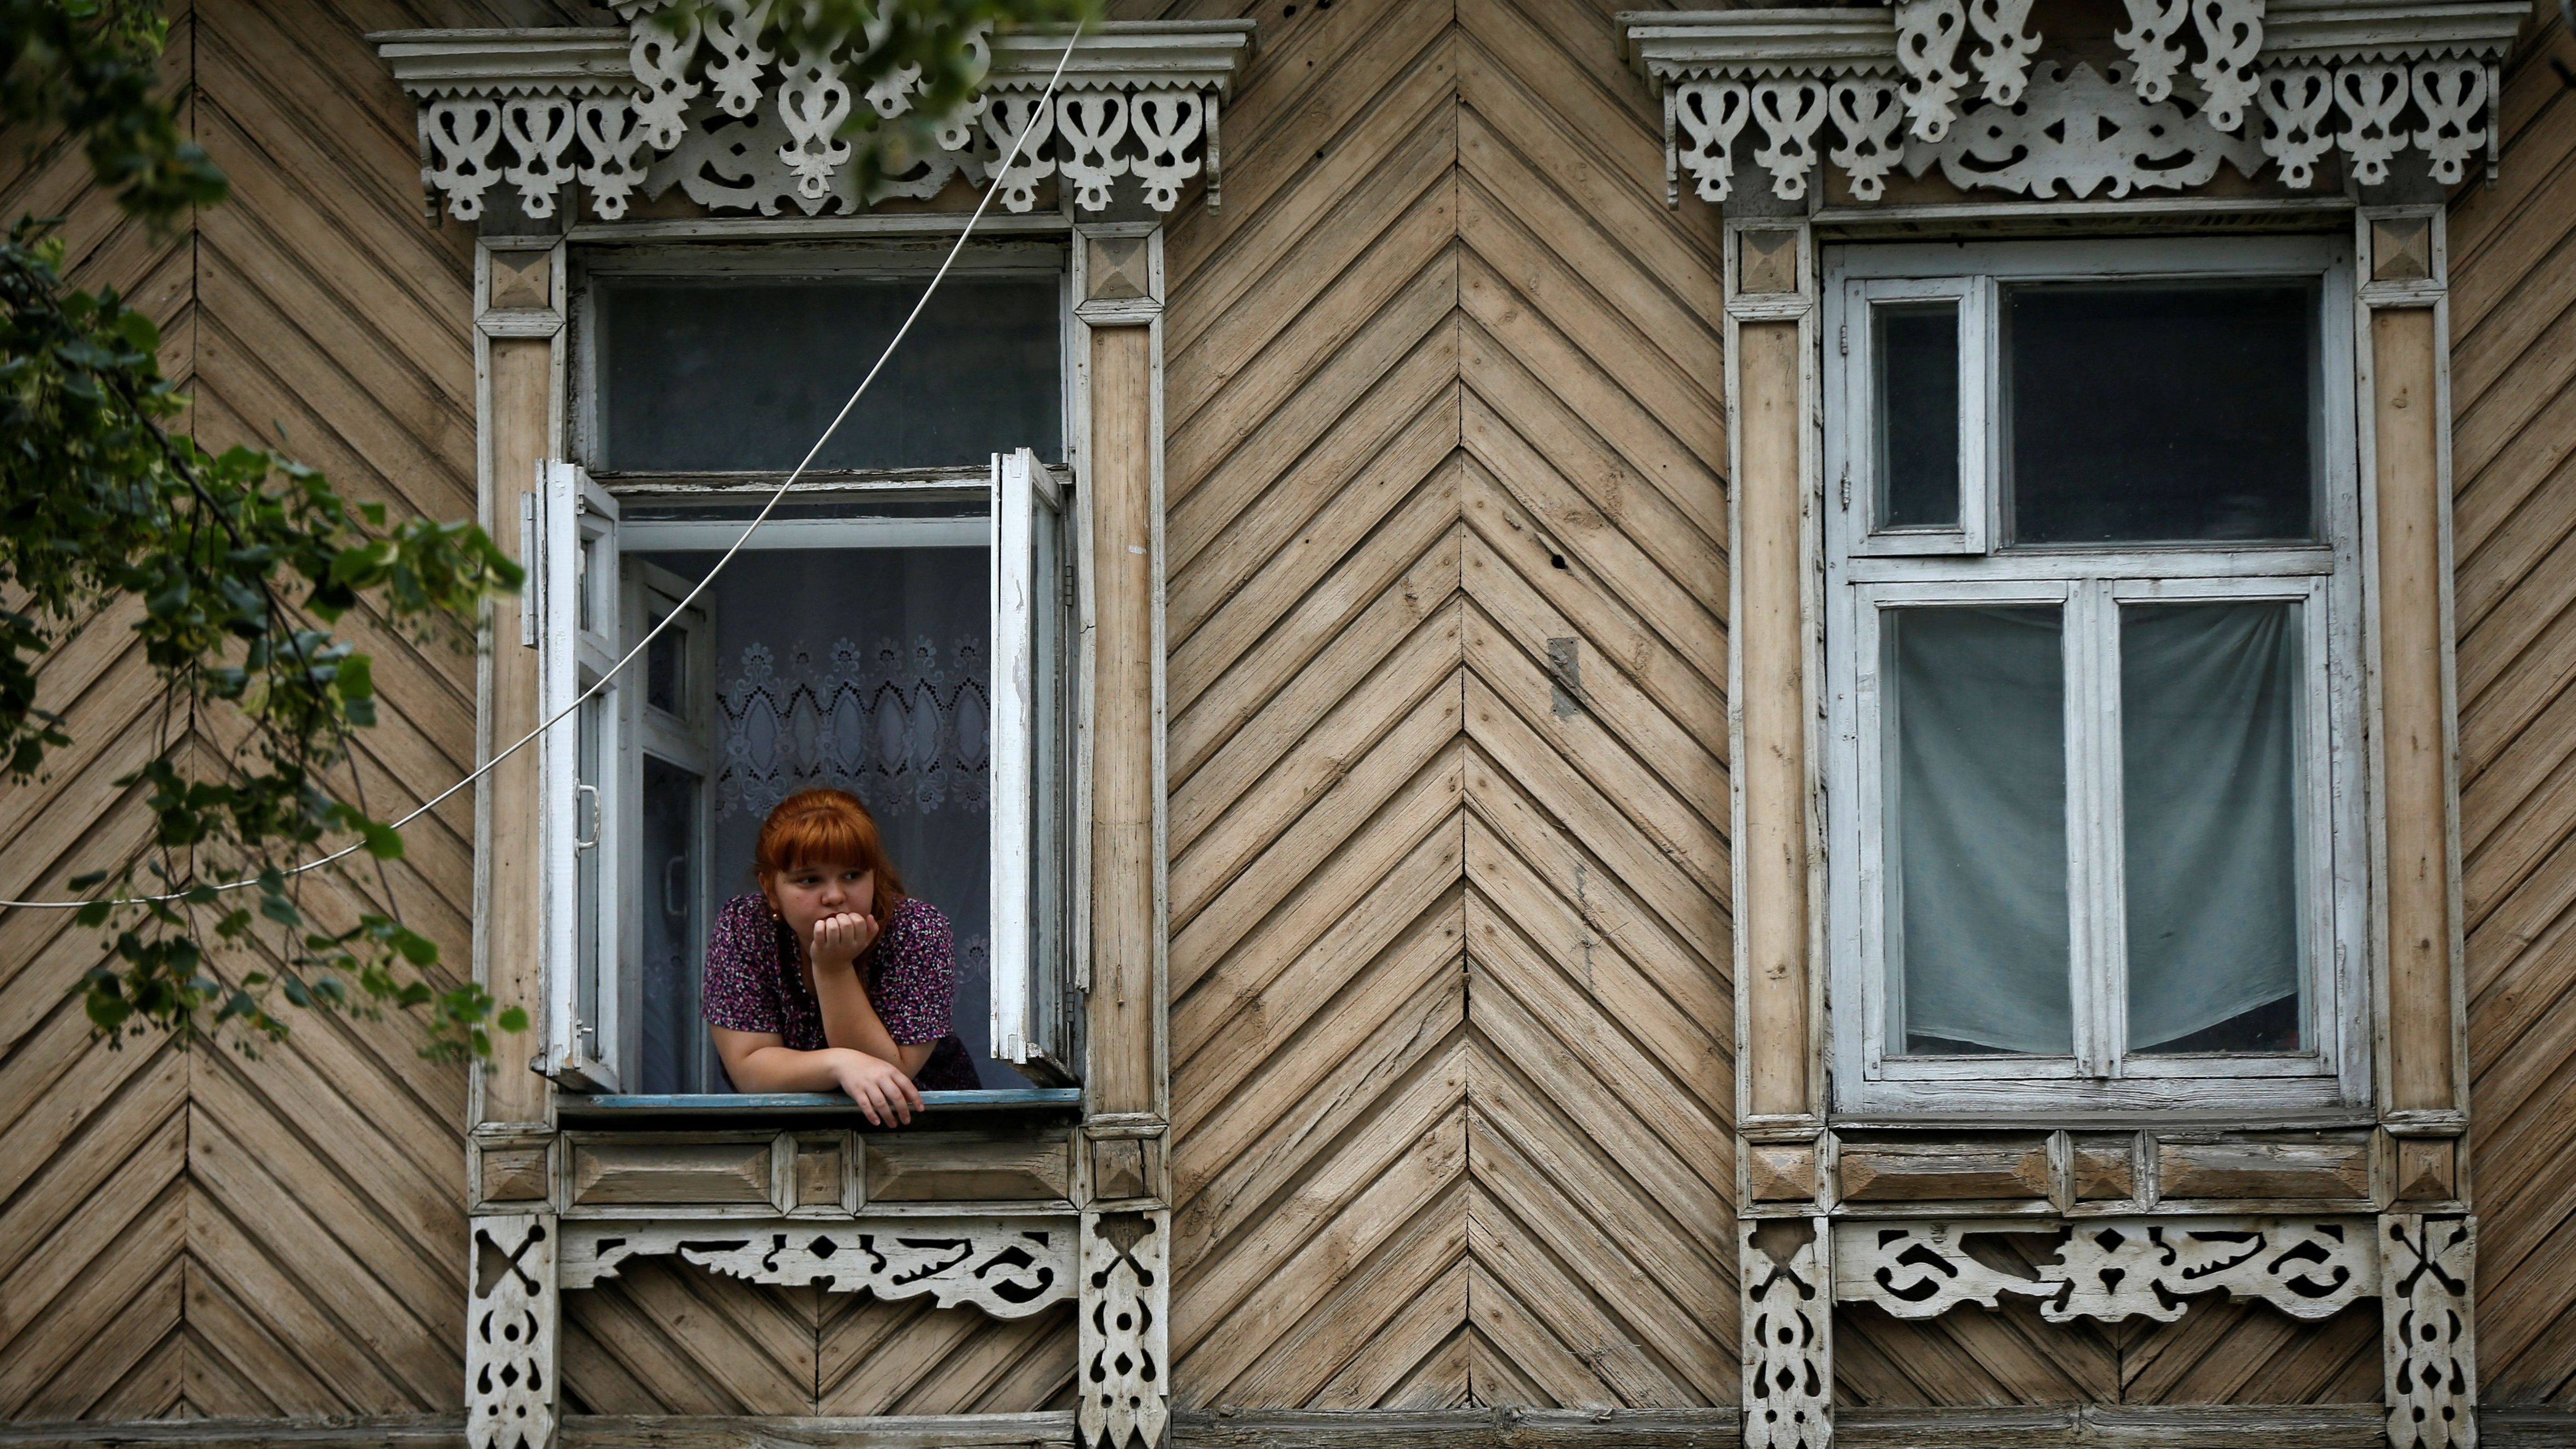 A woman looks out of window in Samara